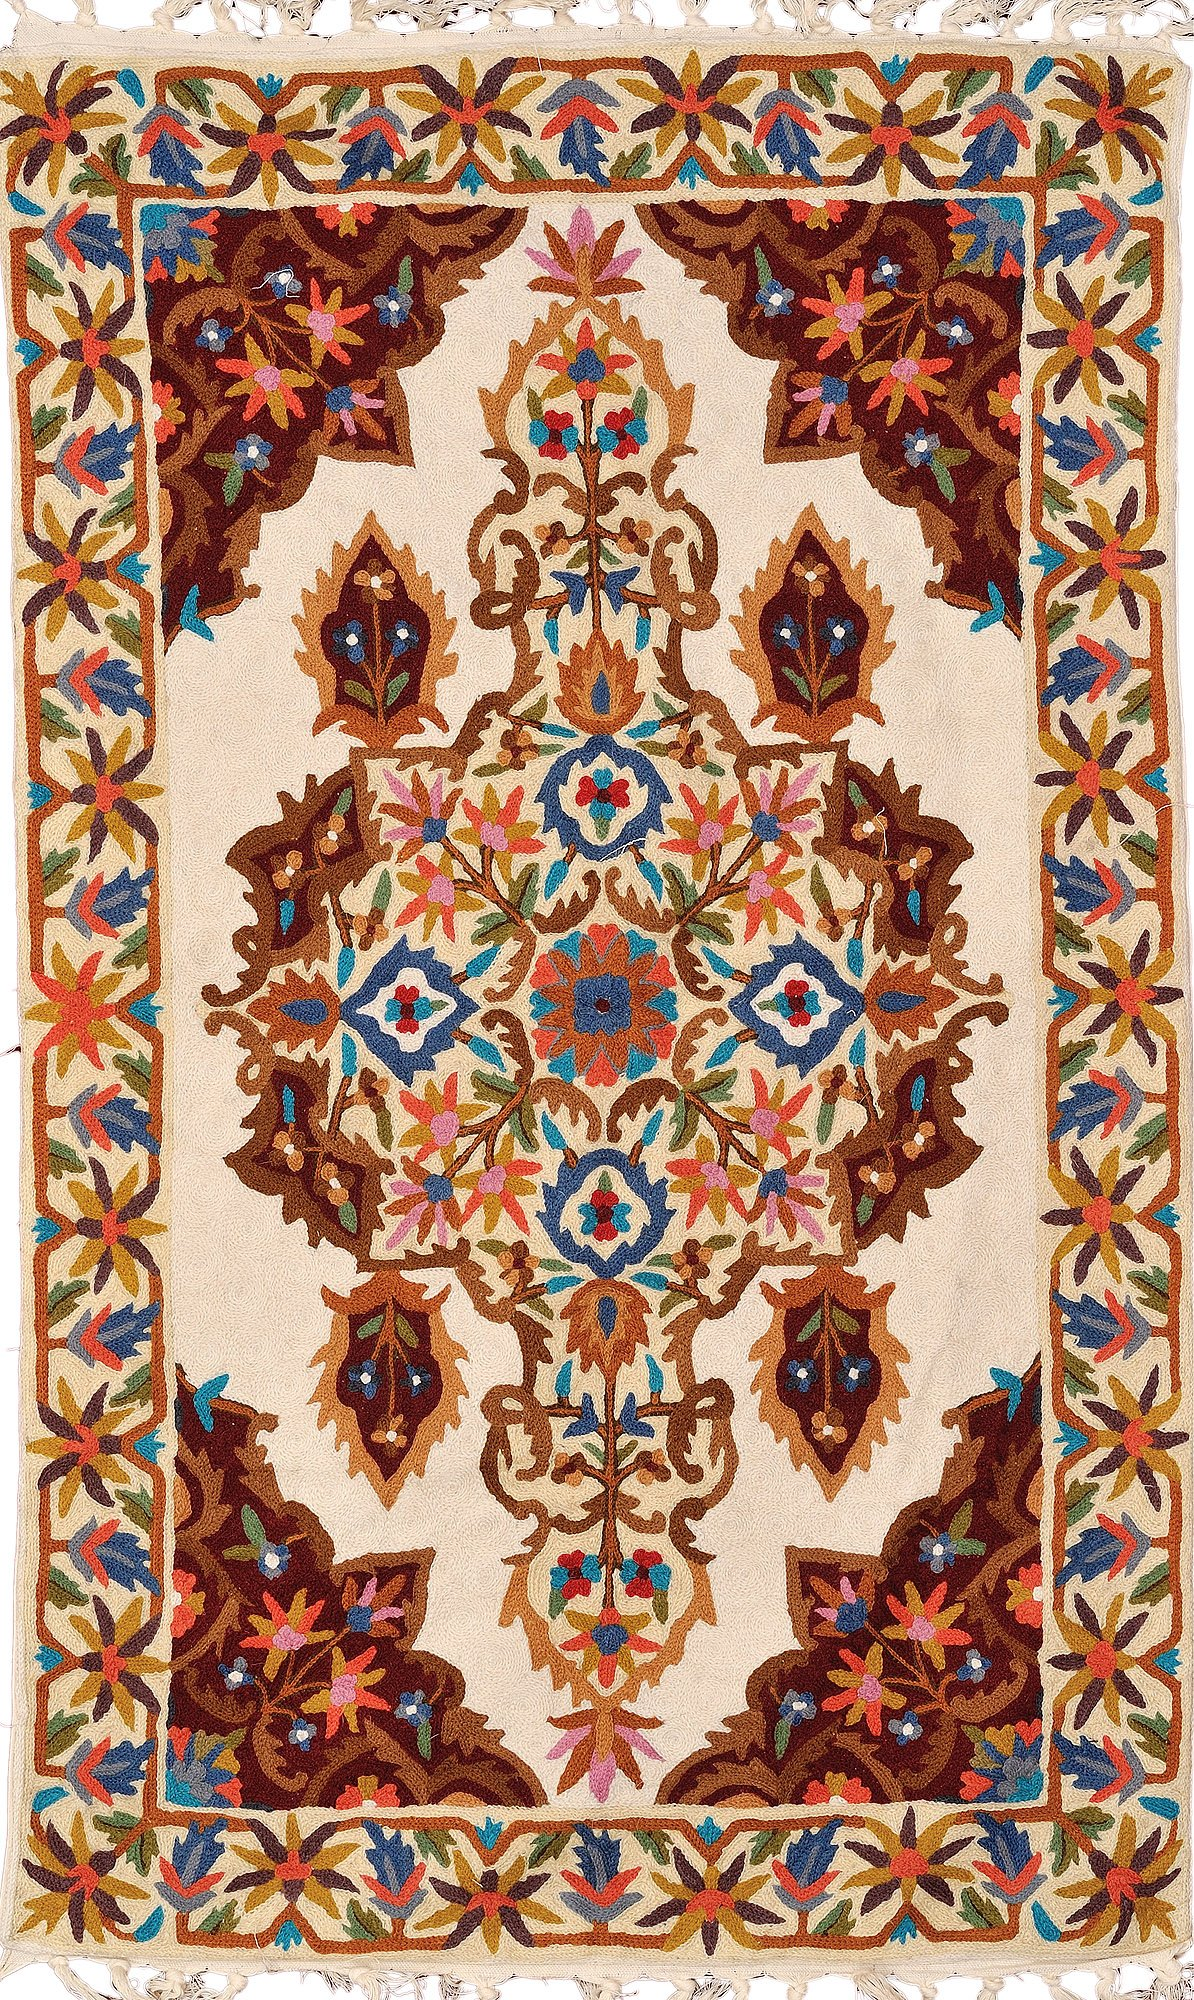 Cream Asana Mat From Kashmir With Floral Embroidery